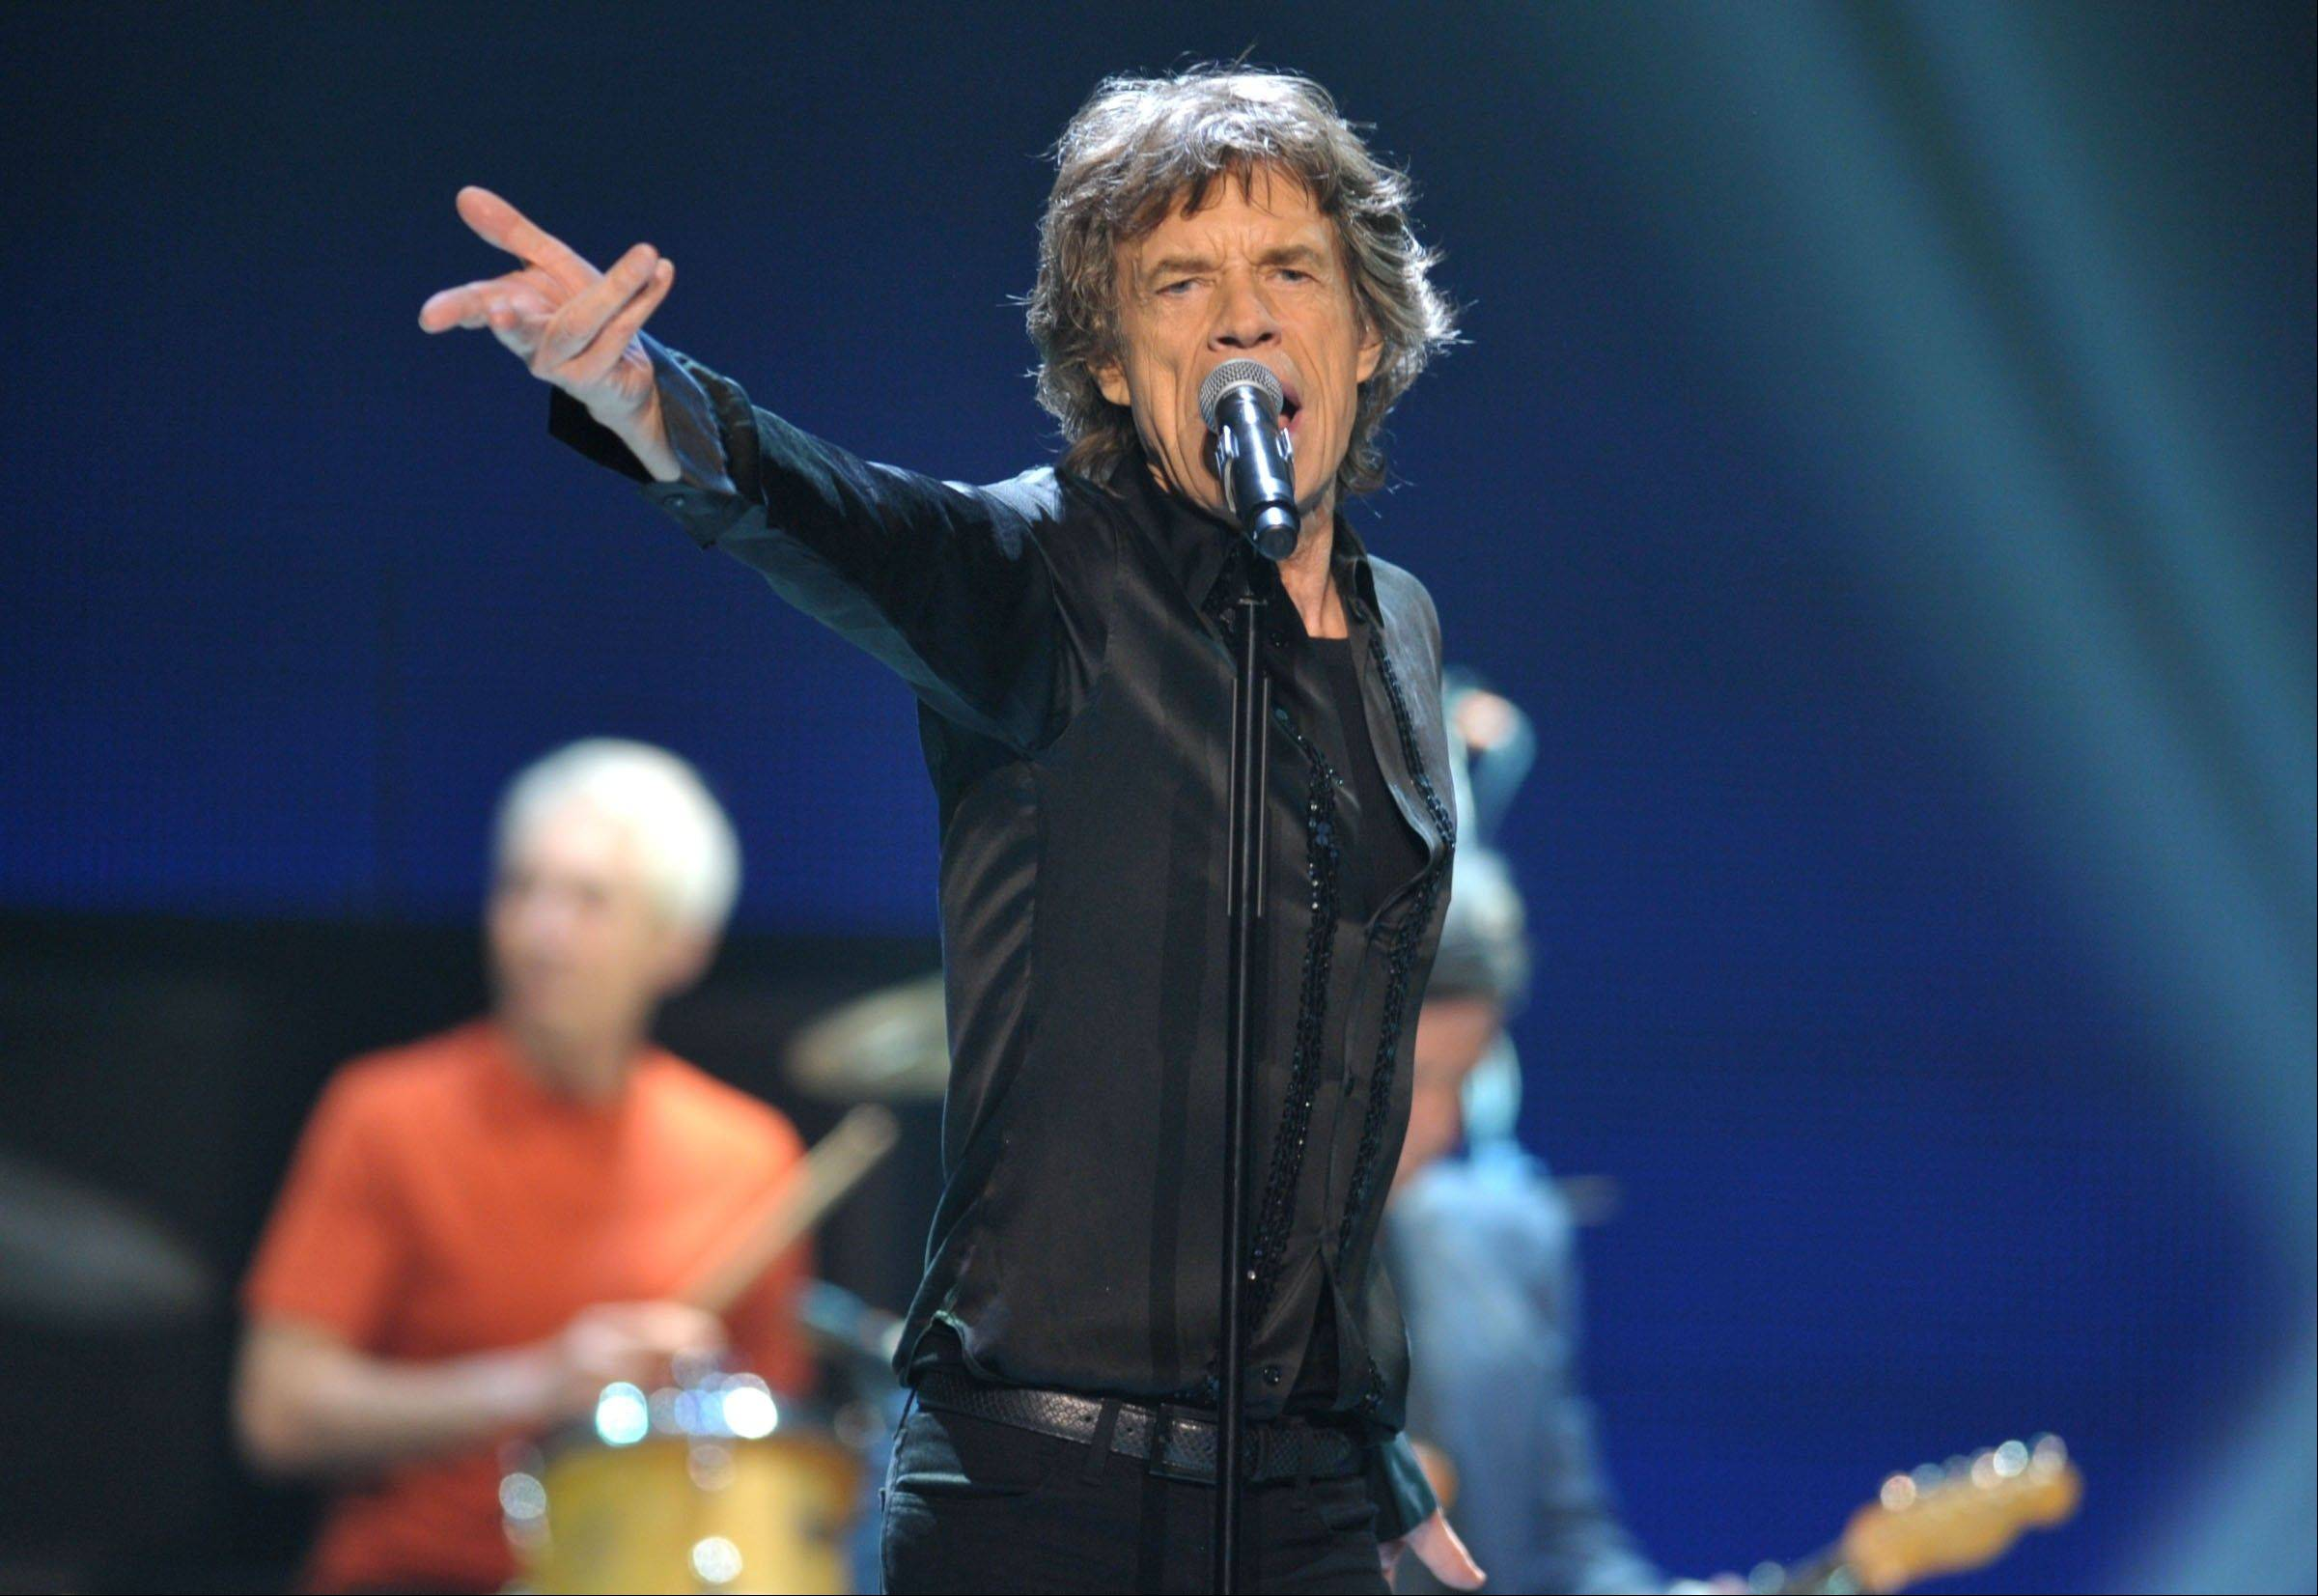 Mick Jagger and the rest of the Rolling Stones headline the United Center in Chicago this weekend.